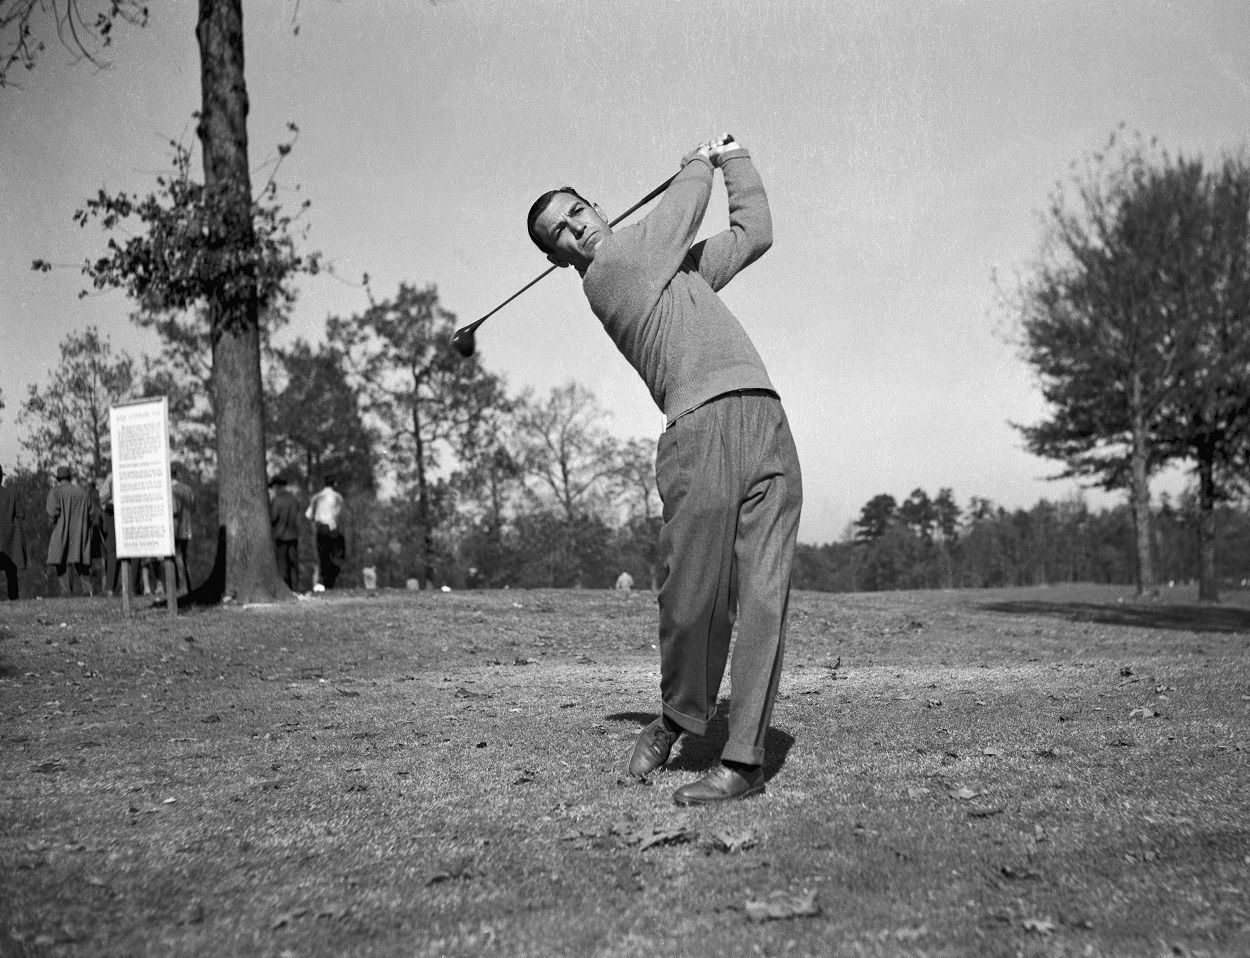 Ben Hogan Was Told He Might Never Walk Again Following a Near-Fatal Car Accident and Won the U.S. Open 16 Months Later